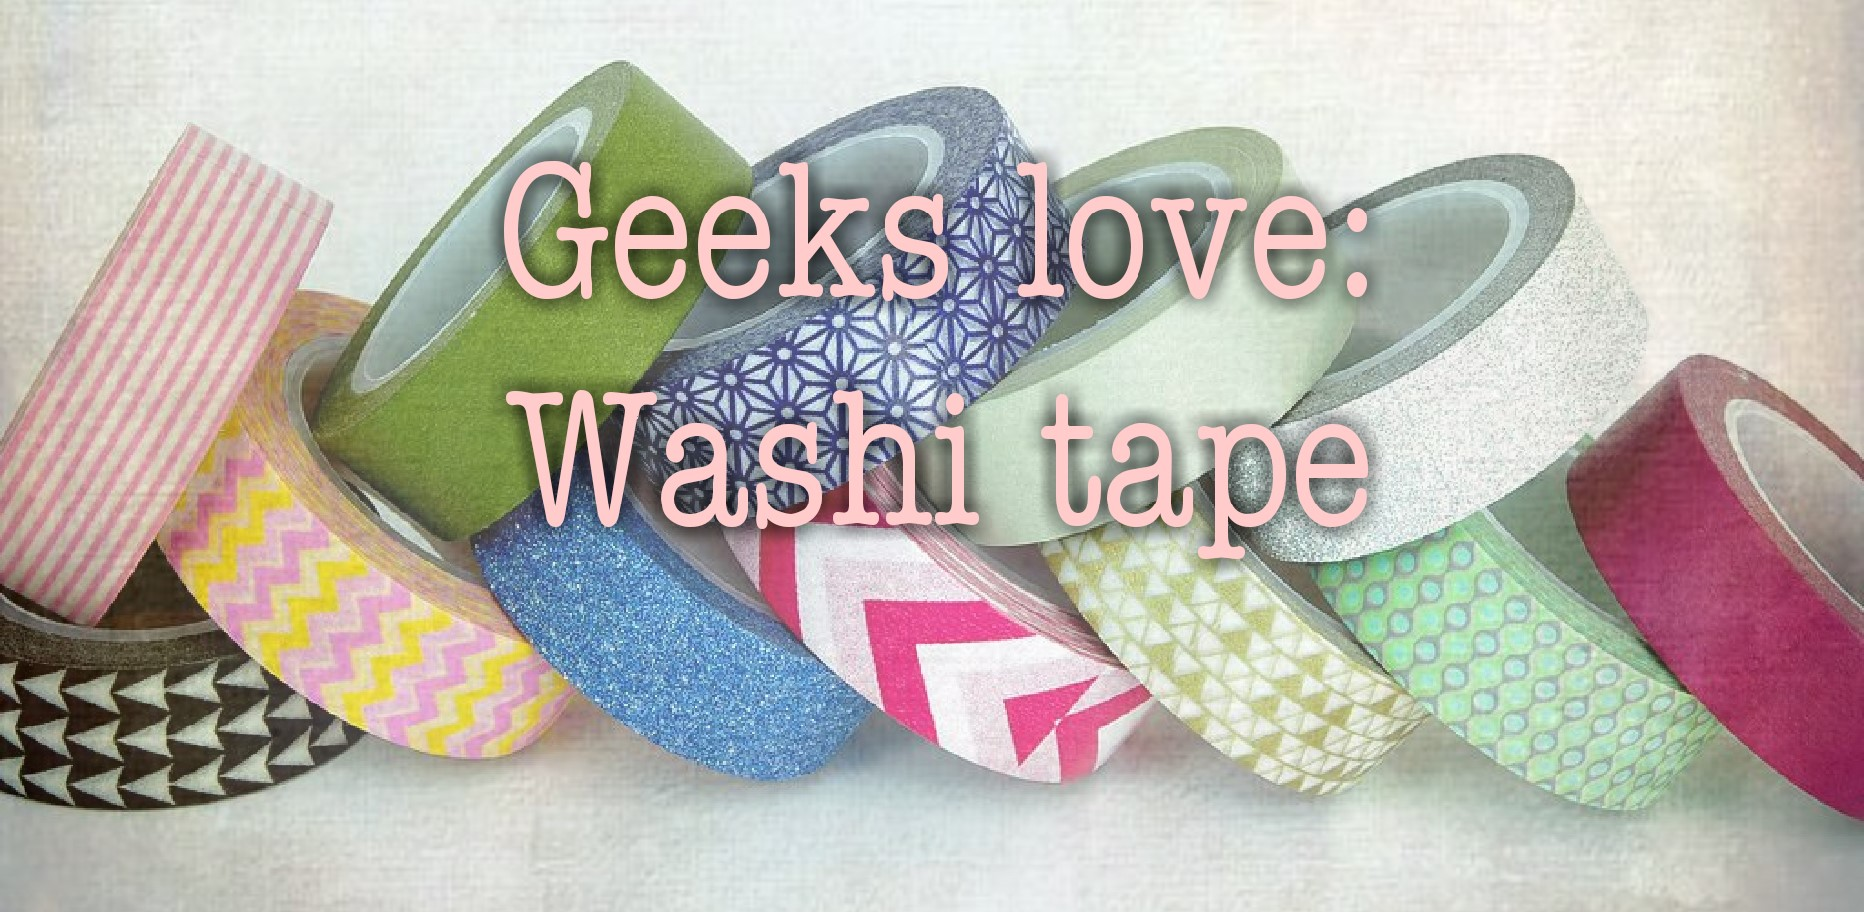 Geeks love: Washi tape